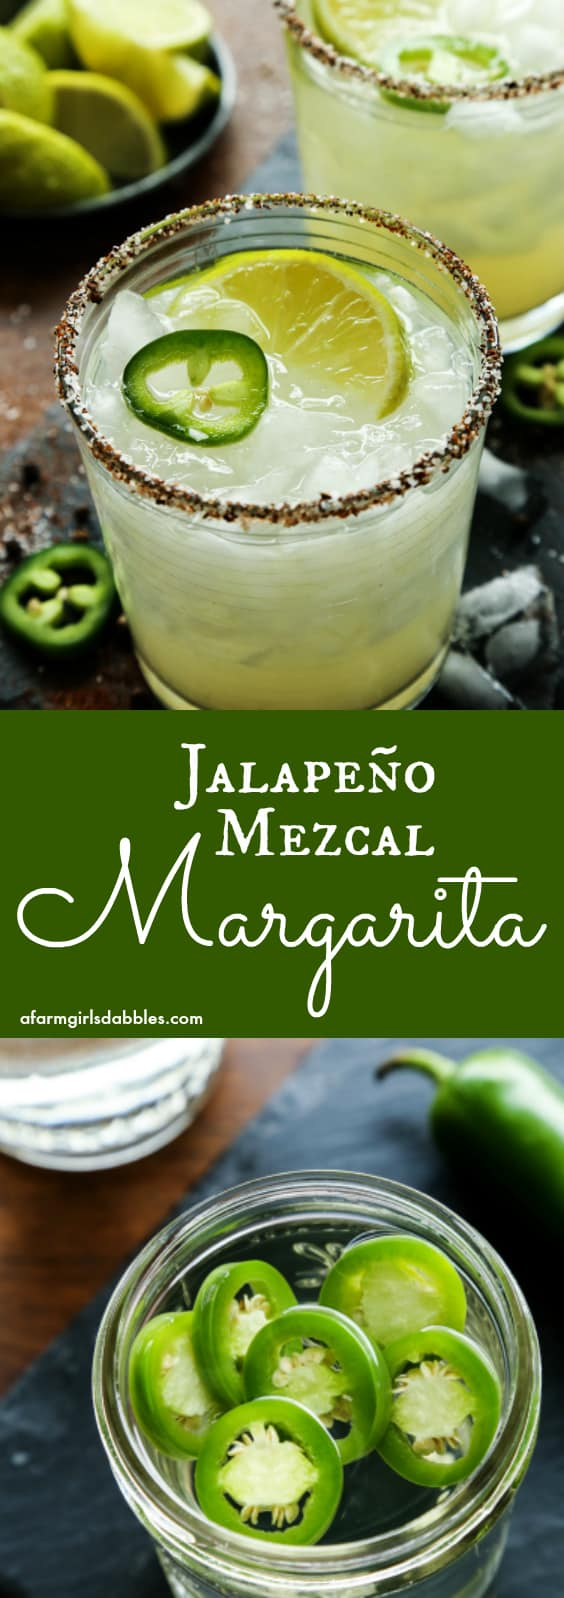 Jalapeno Mezcal Margarita from afarmgirlsdabbles.com - Smoky mezcal is infused with fresh jalapeno for a bold and spicy margarita, all in a chili salt rimmed glass. #mezcal #margarita #jalapeno #spicymargarita #cocktail #cincodemayo